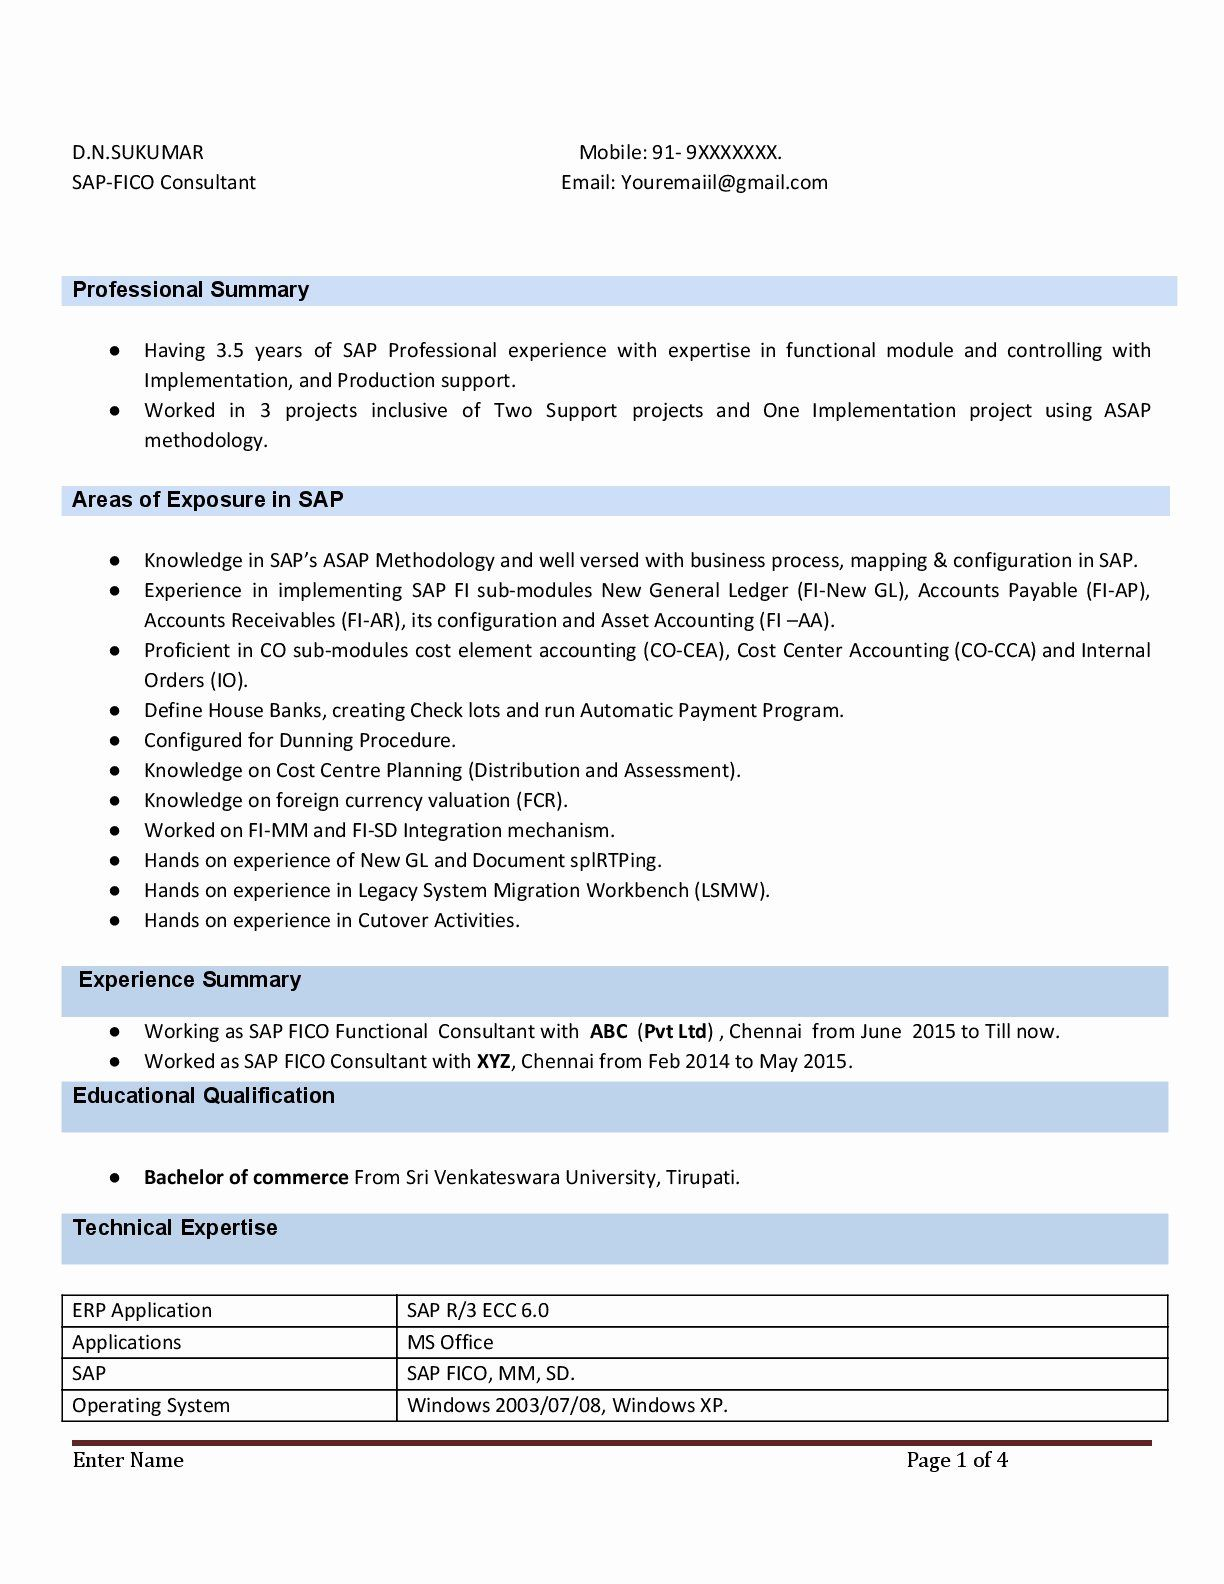 5 Years Experience Resume Luxury Sap Fico Resume With 3 Years Experience Instant Download In 2020 Good Resume Examples Resume Digital Marketing Manager